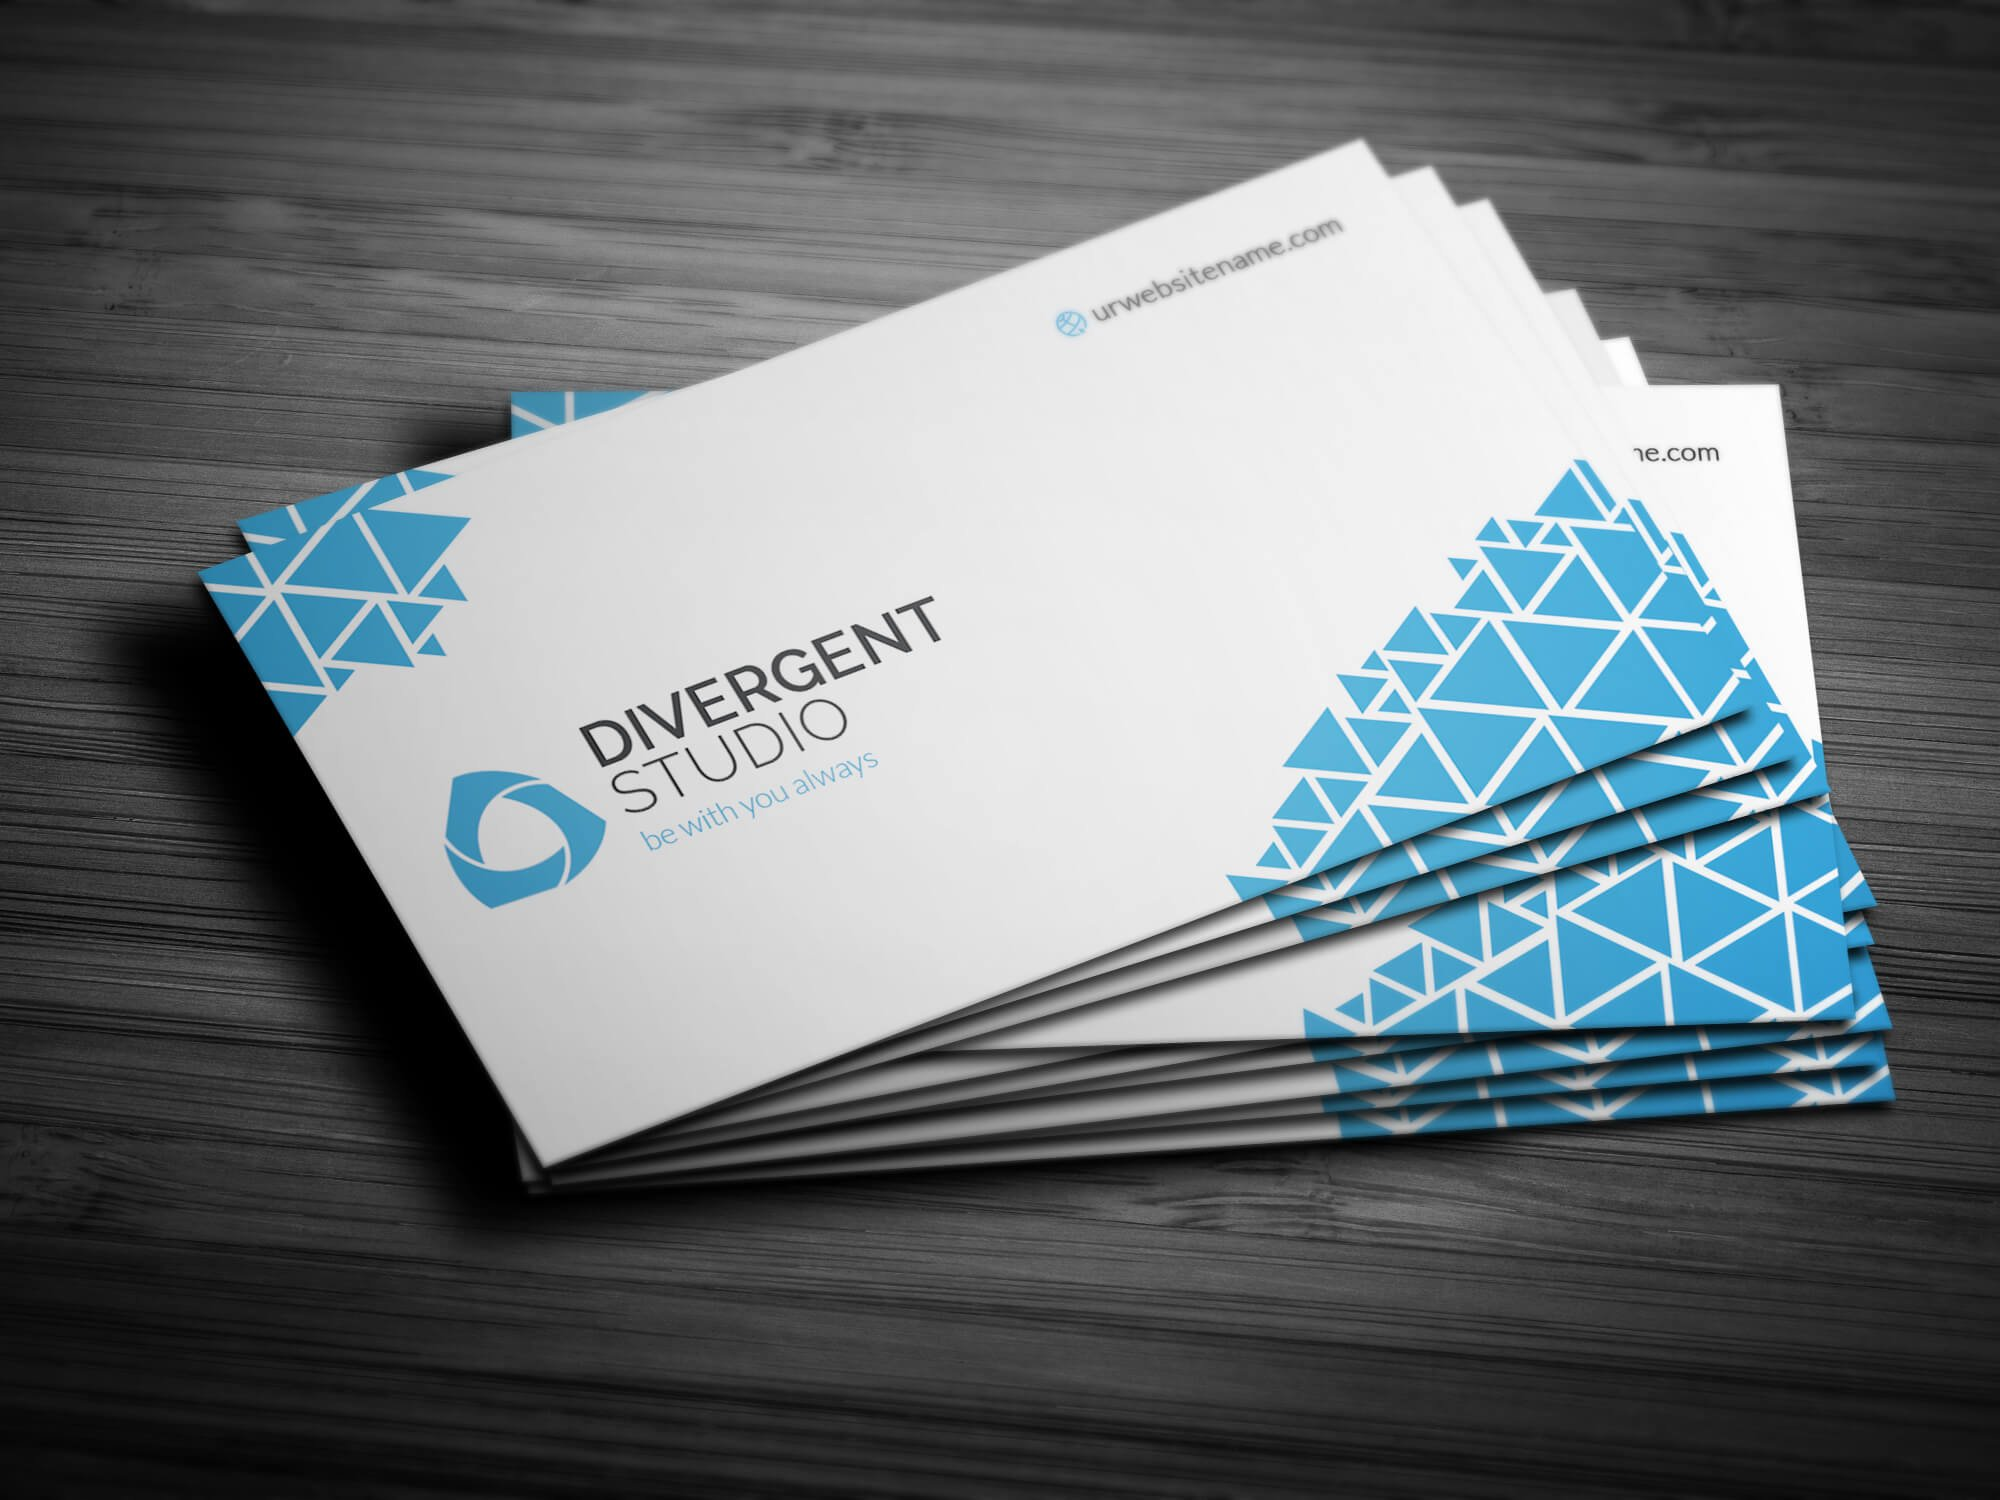 Pixels buisness card business card templates creative market reheart Images